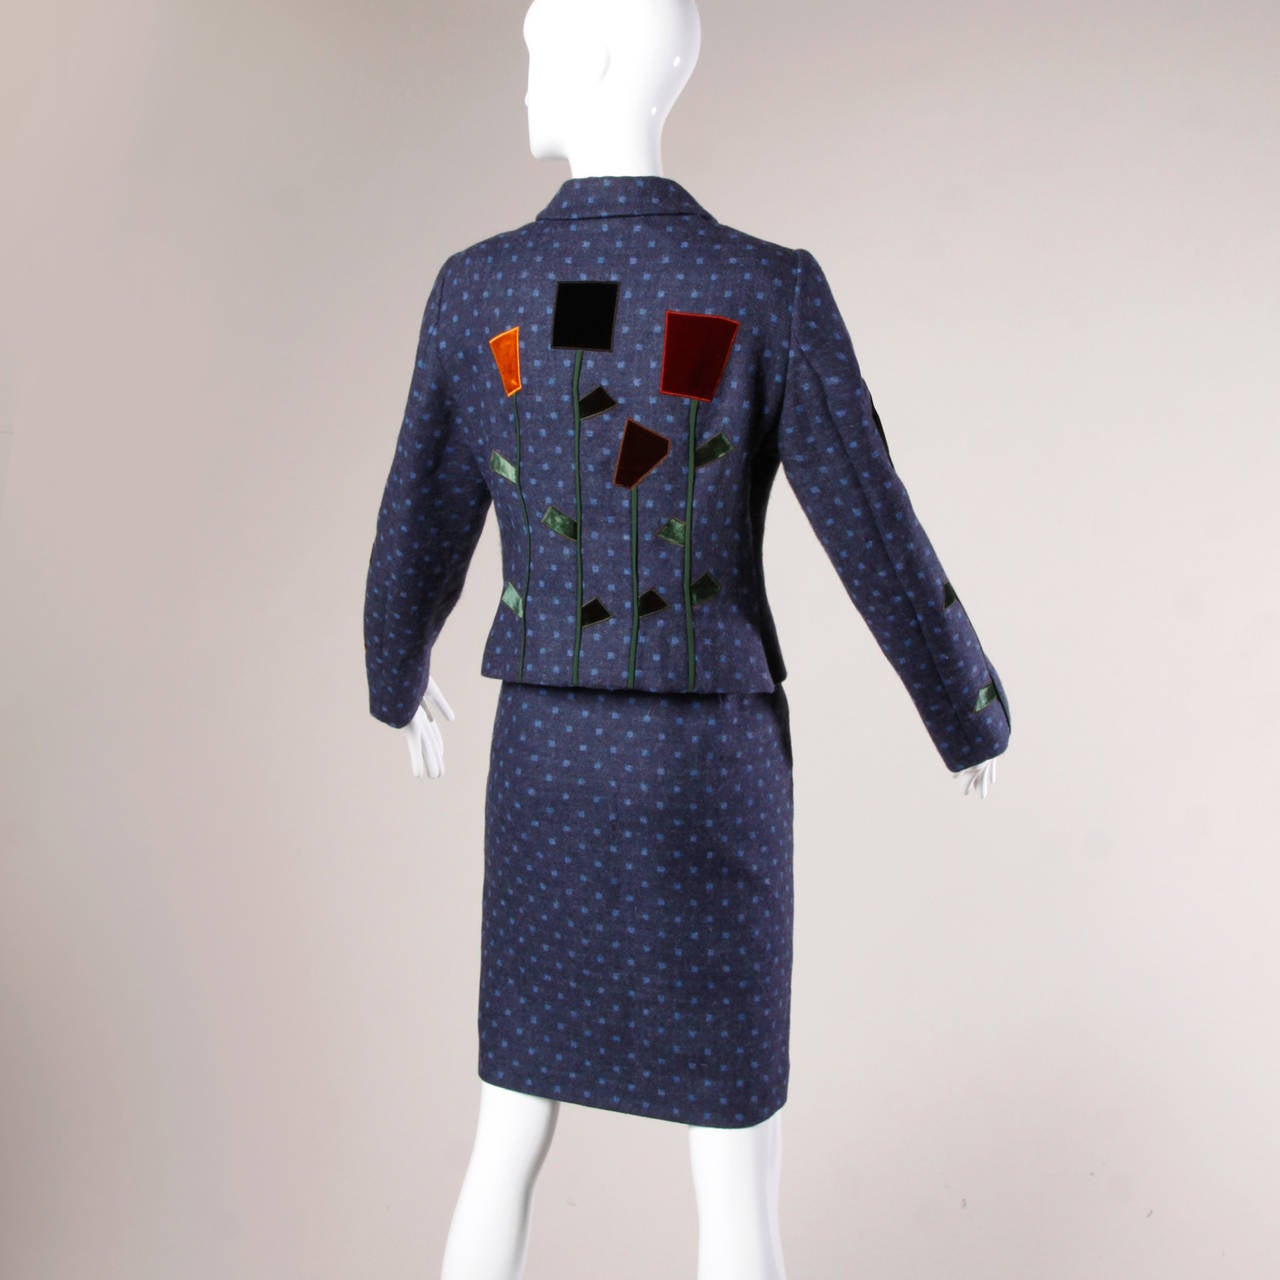 Vintage Moschino blue polka dot skirt suit with patchwork flower design.  Details:  Fully Lined Shoulder Pads Sewn Into Lining Button Closure On Jacket/ Side Zip and Hook Closure On Skirt Marked Size: I 46/ US 12/ D 42/ F 42/ GB 14 Color: